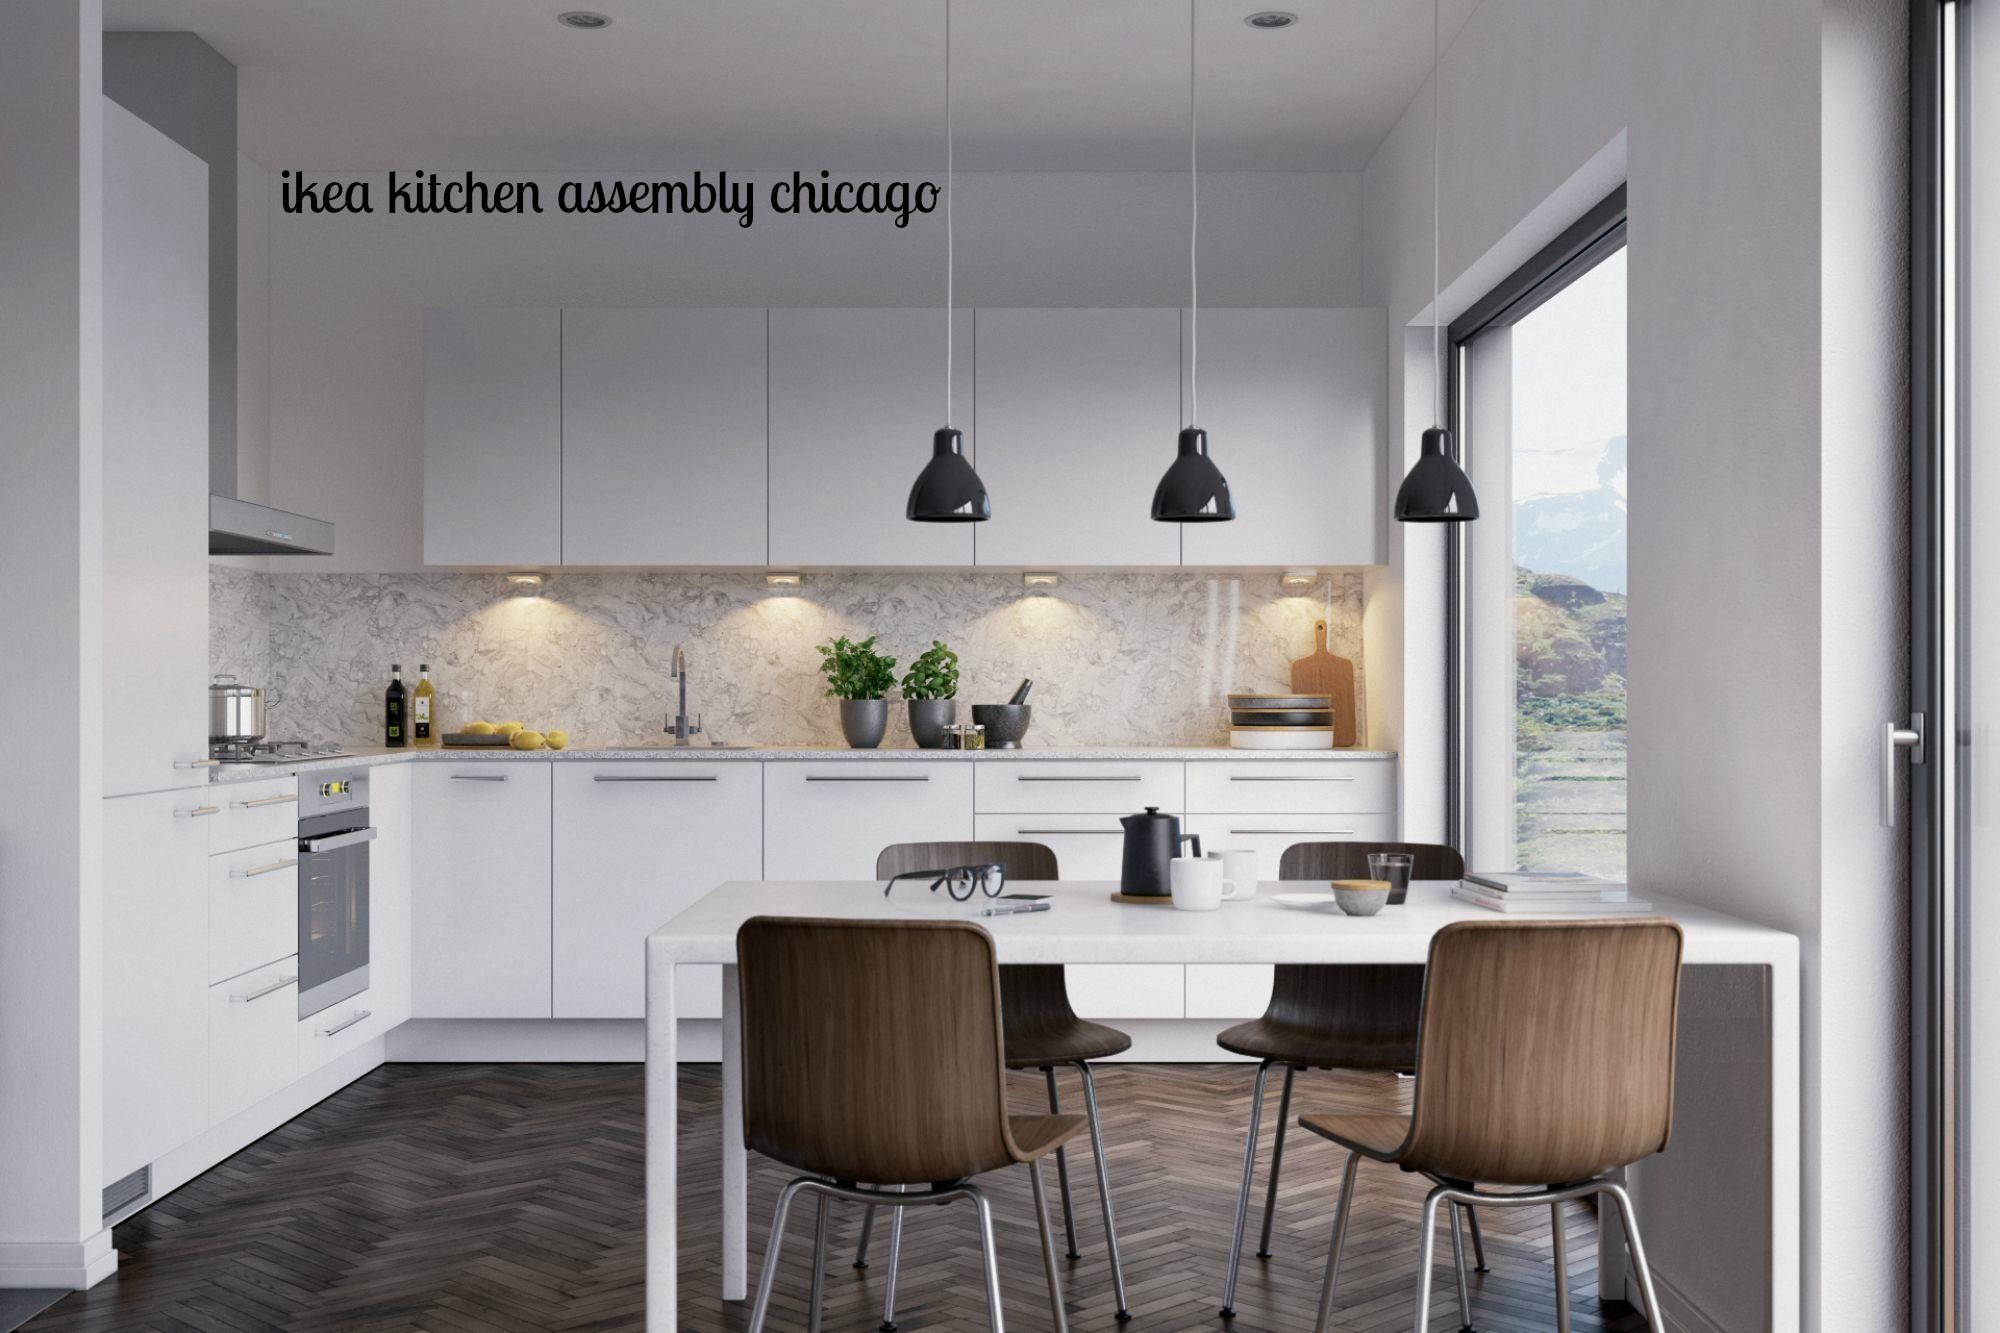 ikea kitchen assembly Services Chicago Provide with a perfect plan ...